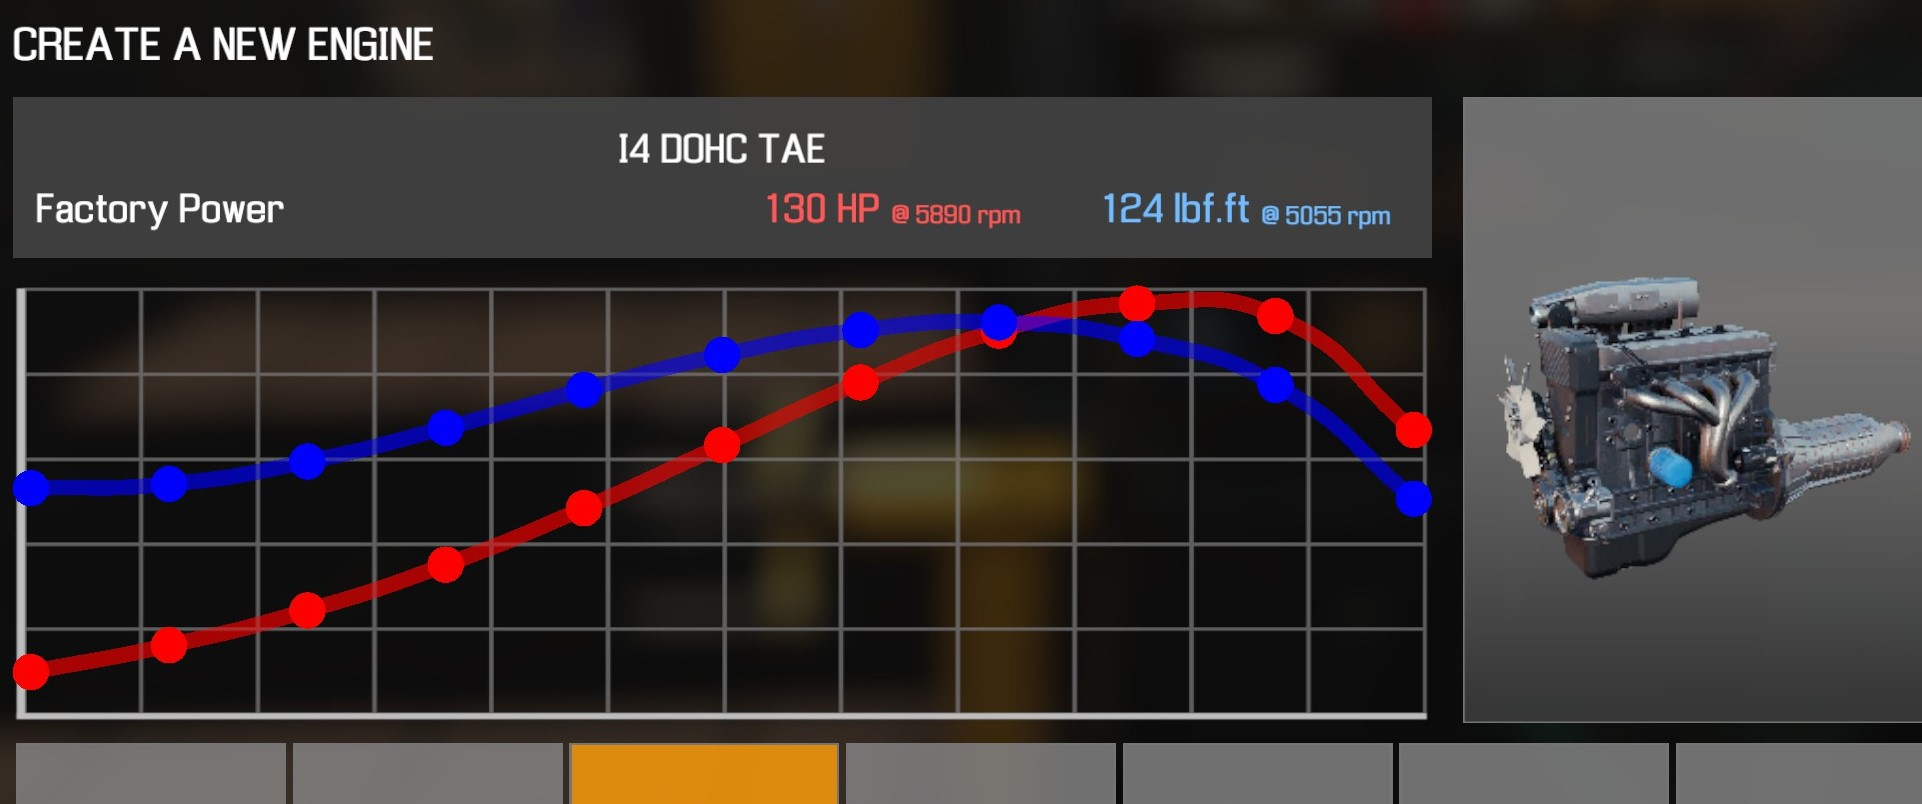 Car Mechanic Simulator 2021 - How to Buy Engine Parts and All Engines in Game Information - I4 DOHC TAE - 8DF4B02